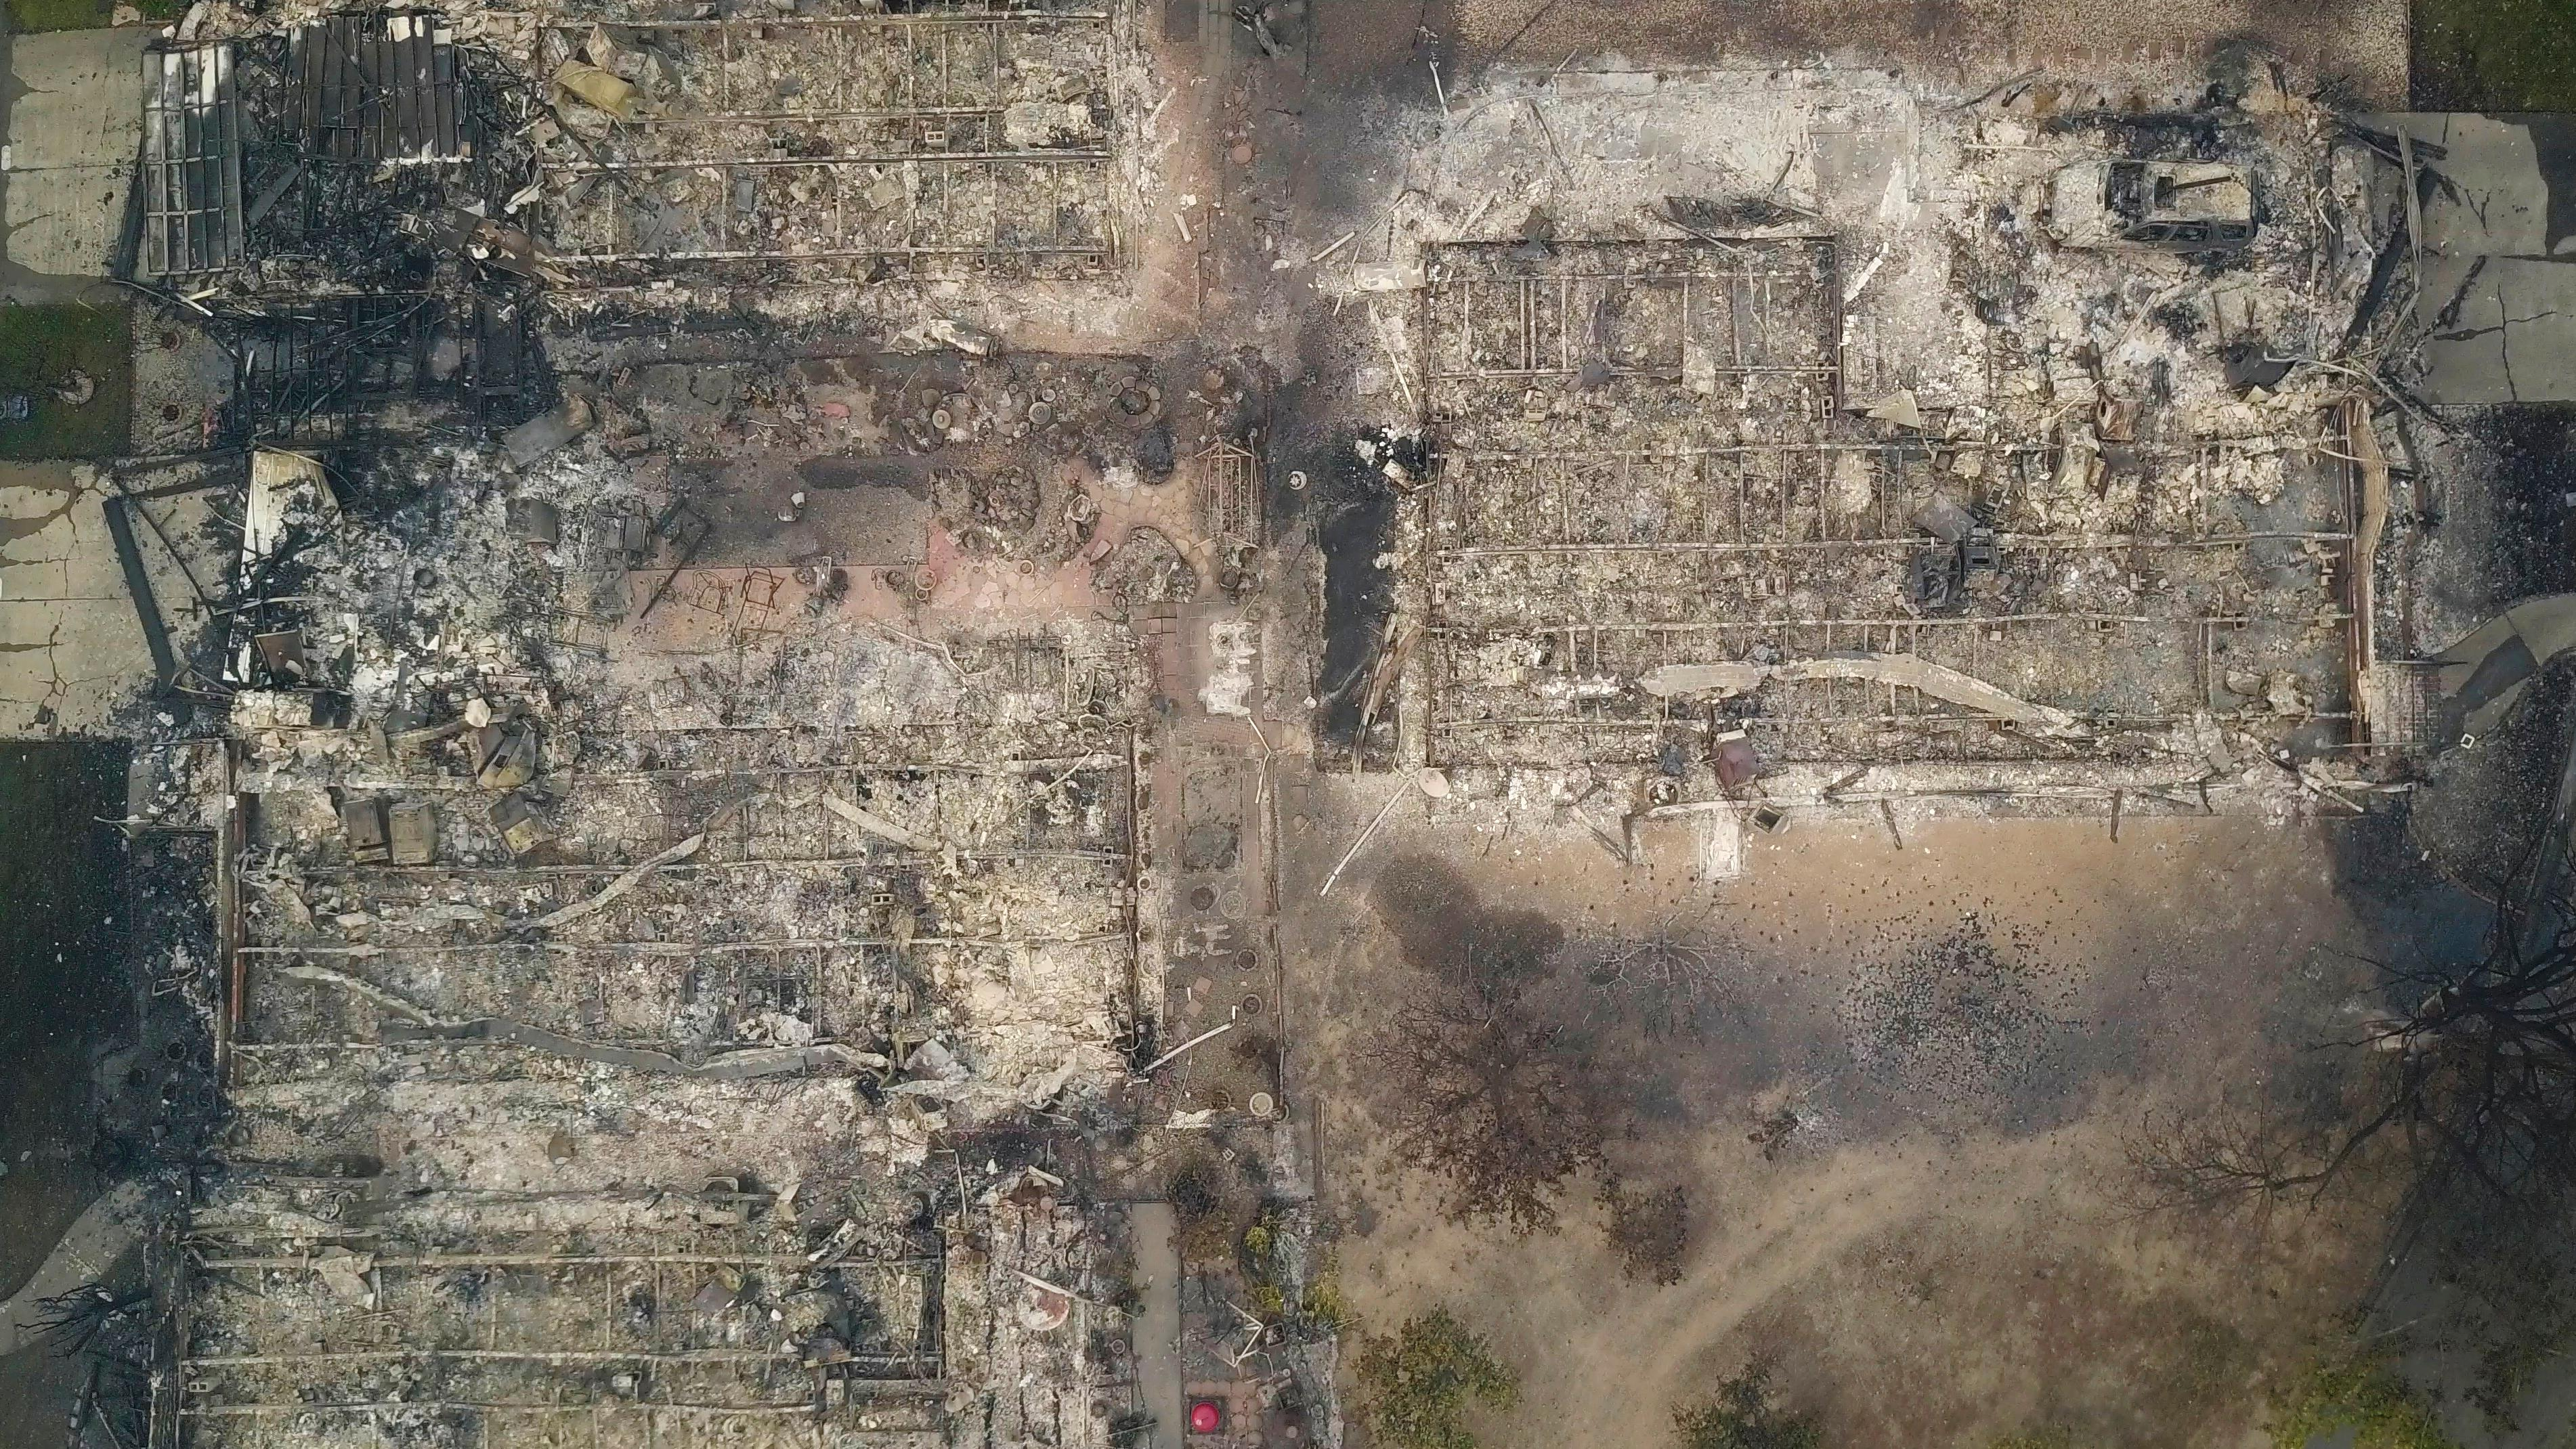 This aerial image shows homes that were destroyed by a wildfire in Santa Rosa, Calif., Tuesday, Oct. 10, 2017. Newly homeless residents of California wine country took stock of their shattered lives Tuesday, a day after deadly wildfires destroyed homes and businesses. (Nick Giblin/DroneBase via AP)